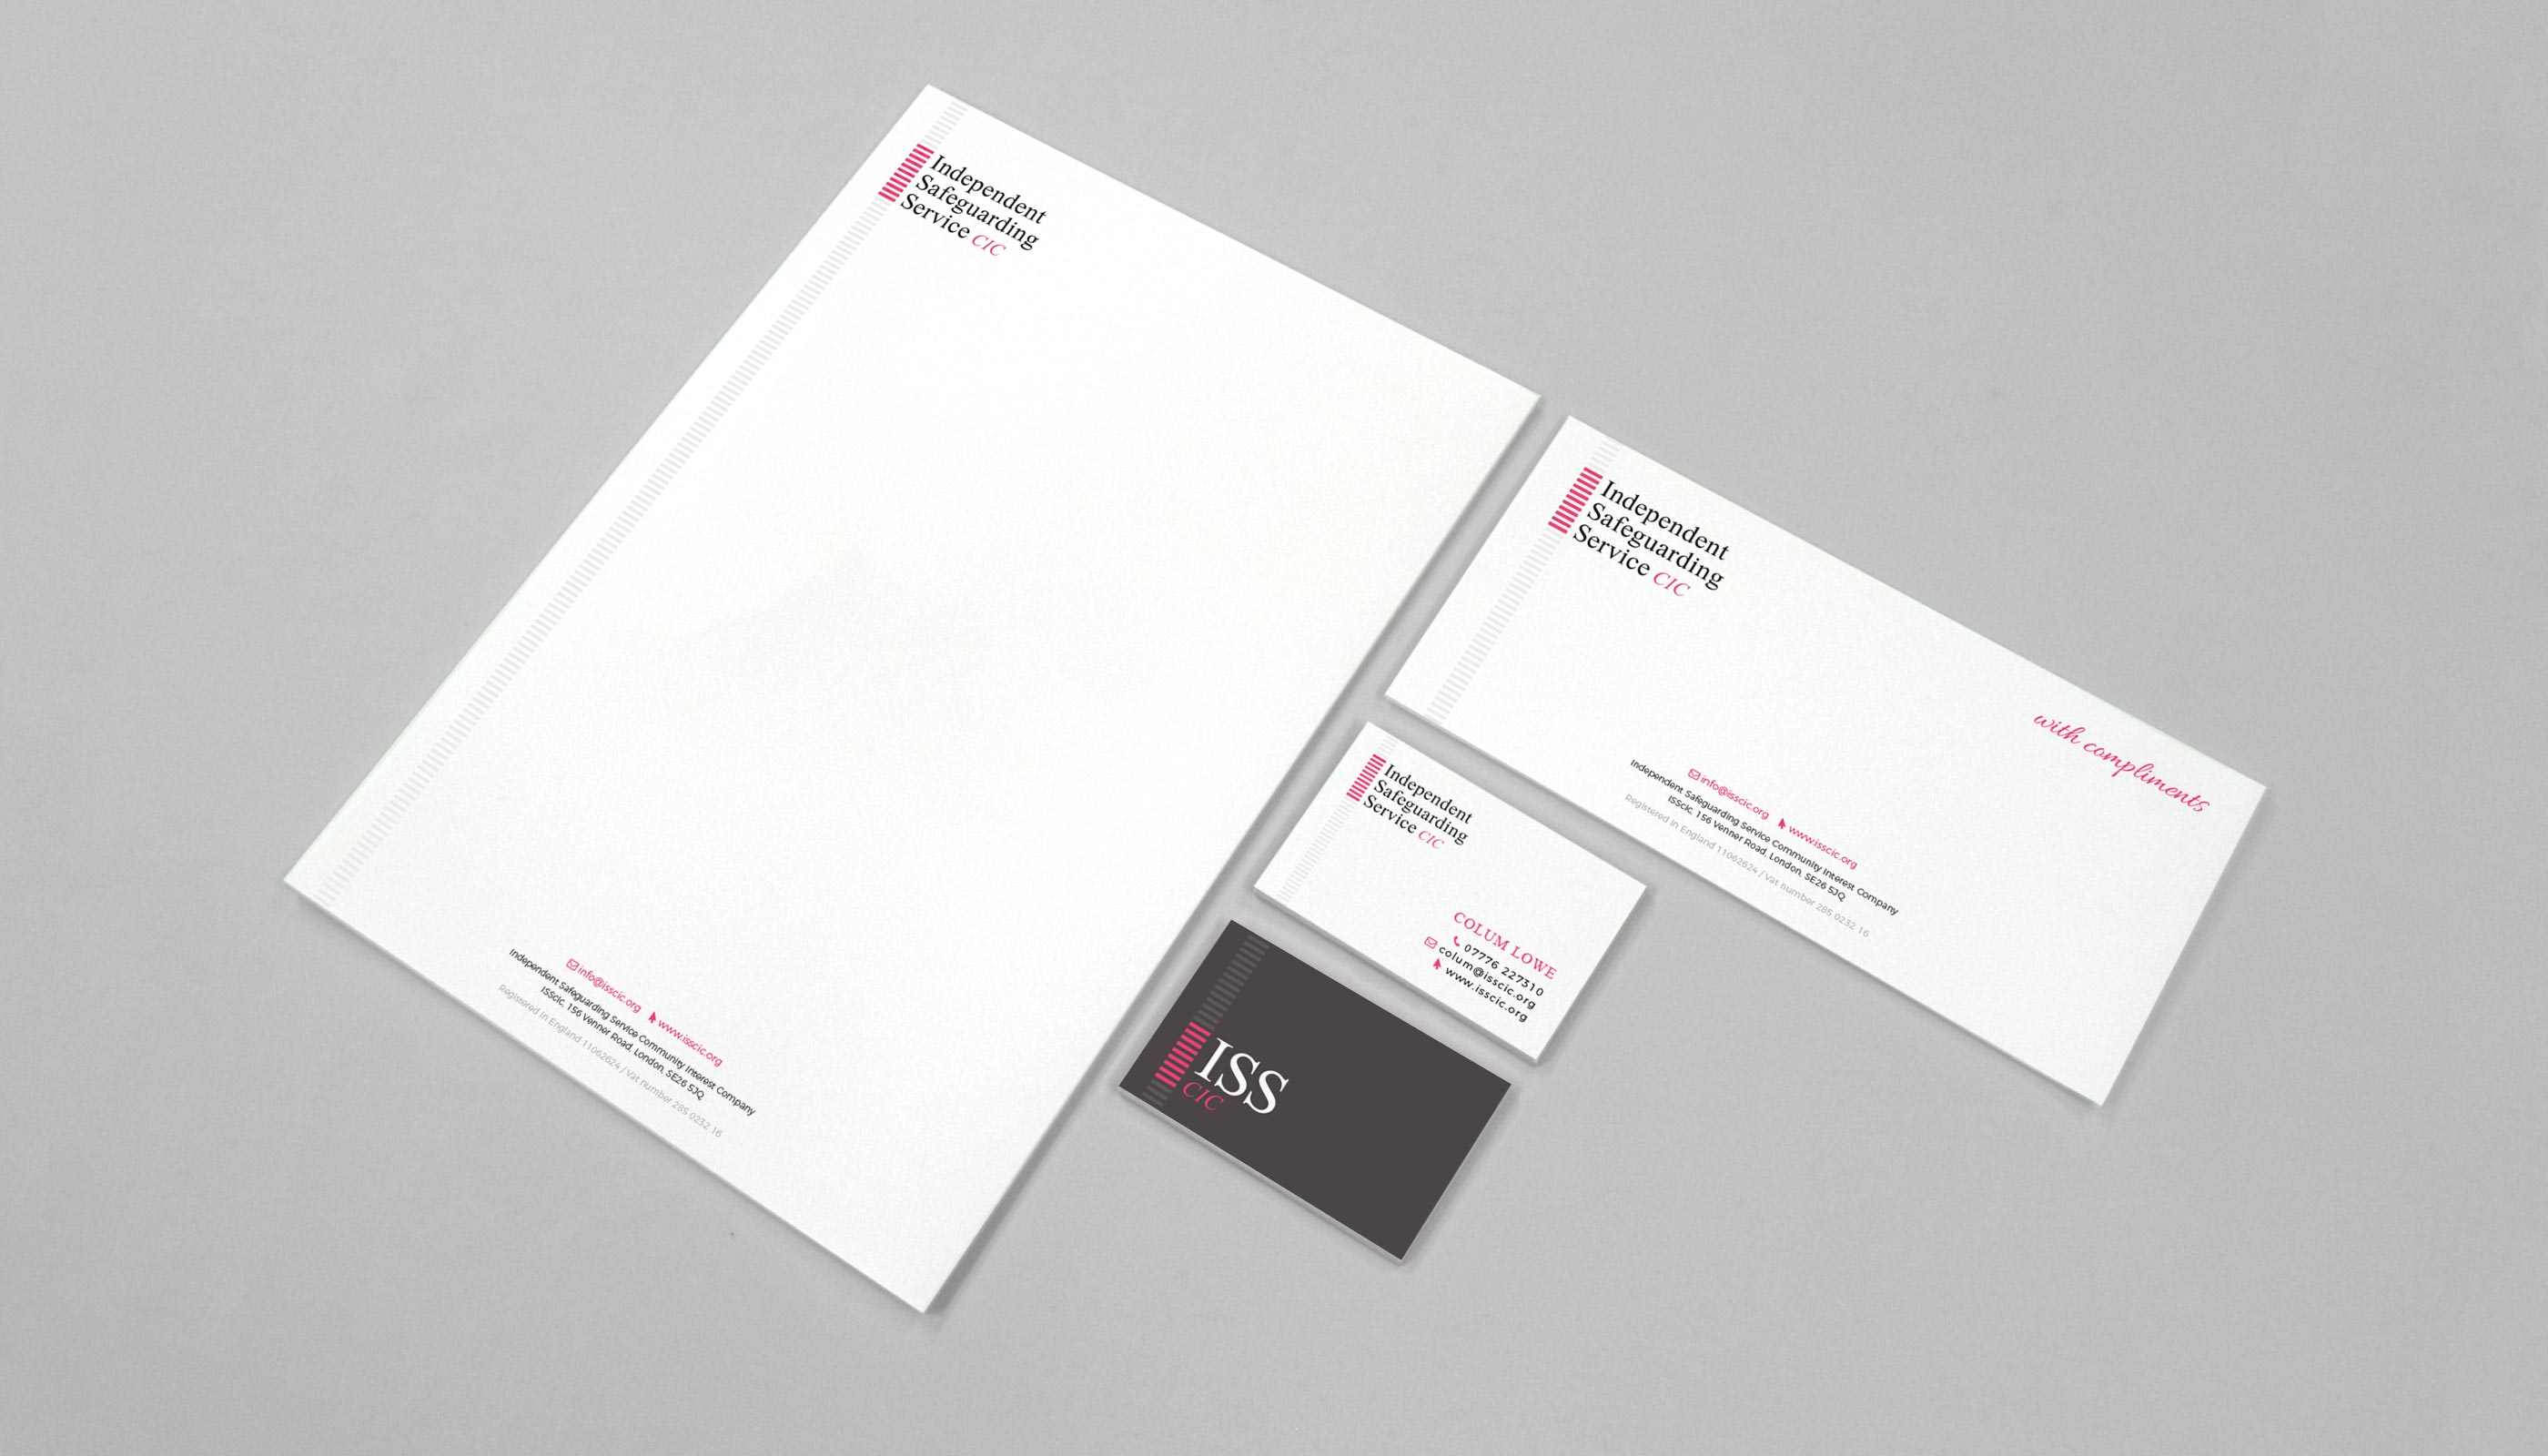 Stationery design for Independent Safeguarding Service CIC, in London.